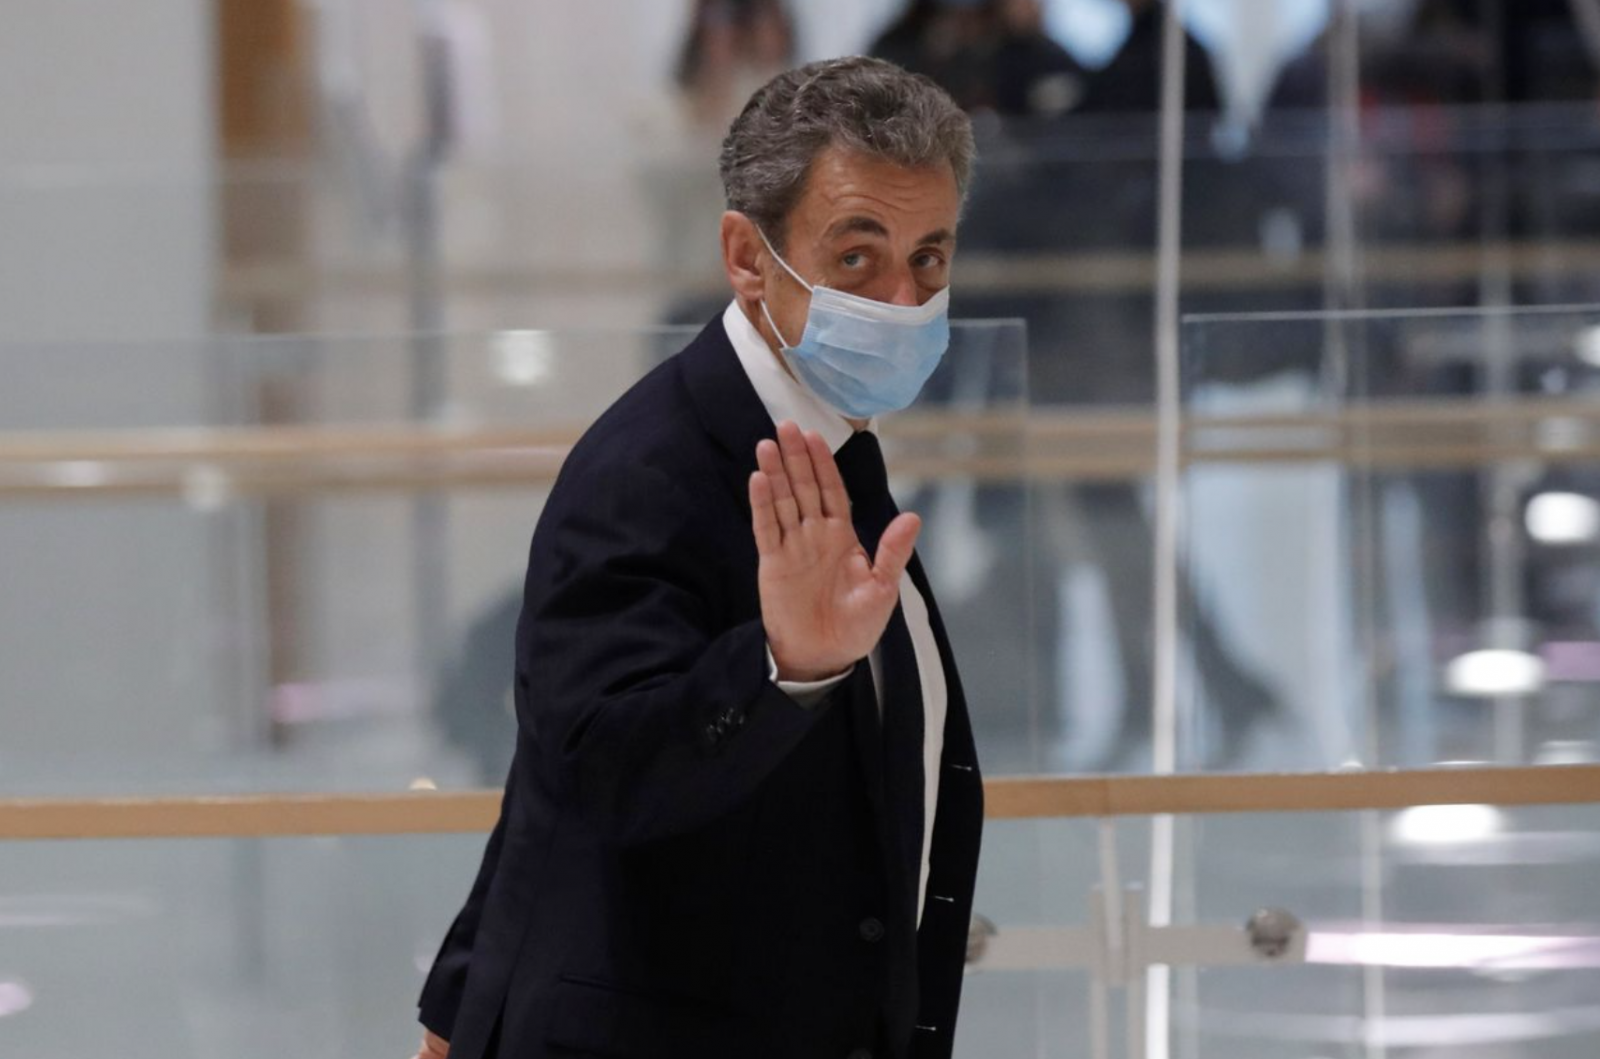 Corruption Trial of Former President Sarkozy Opens in France